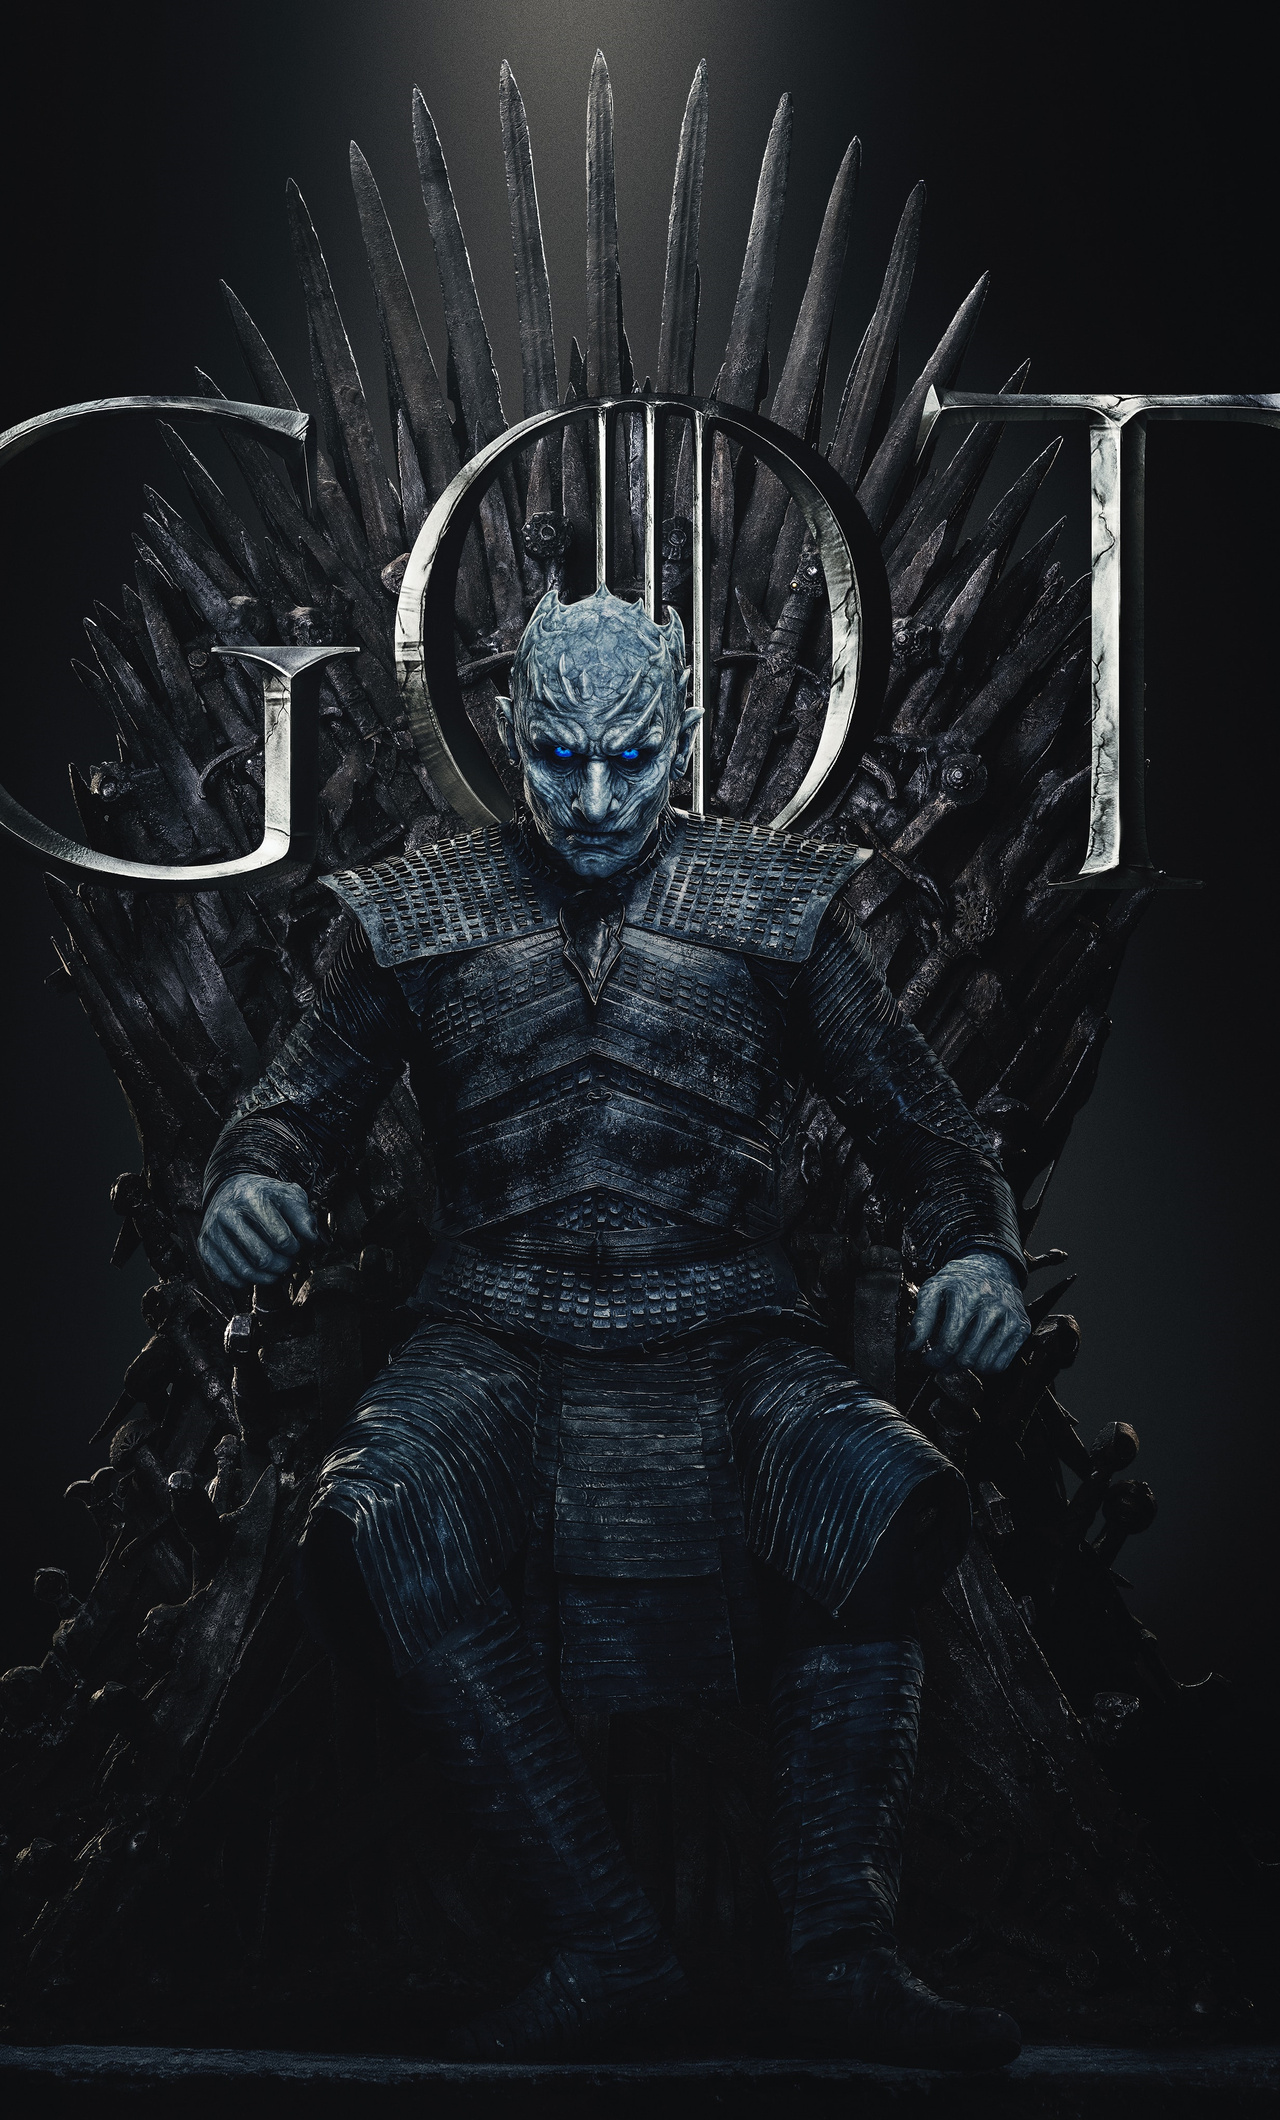 game-of-thrones-season-8-poster-2019-0i.jpg